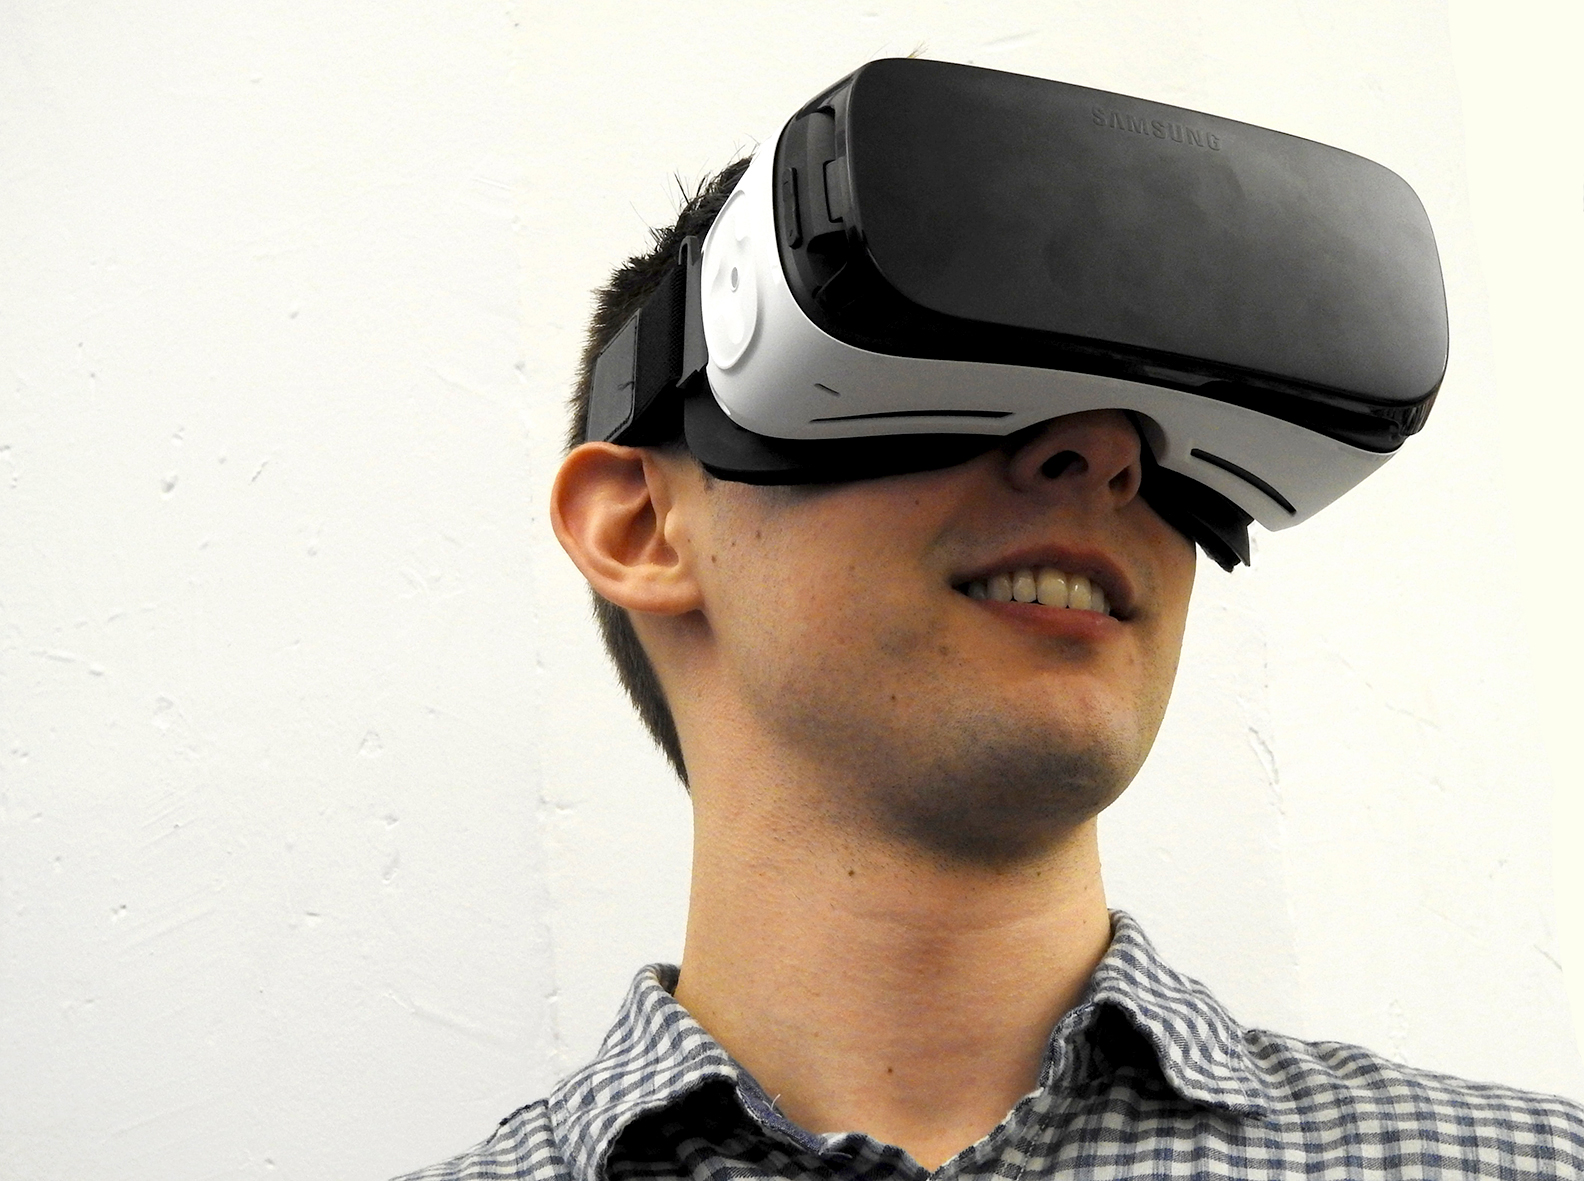 Doctors Are Using Virtual Reality To Help Patients Deal With Pain